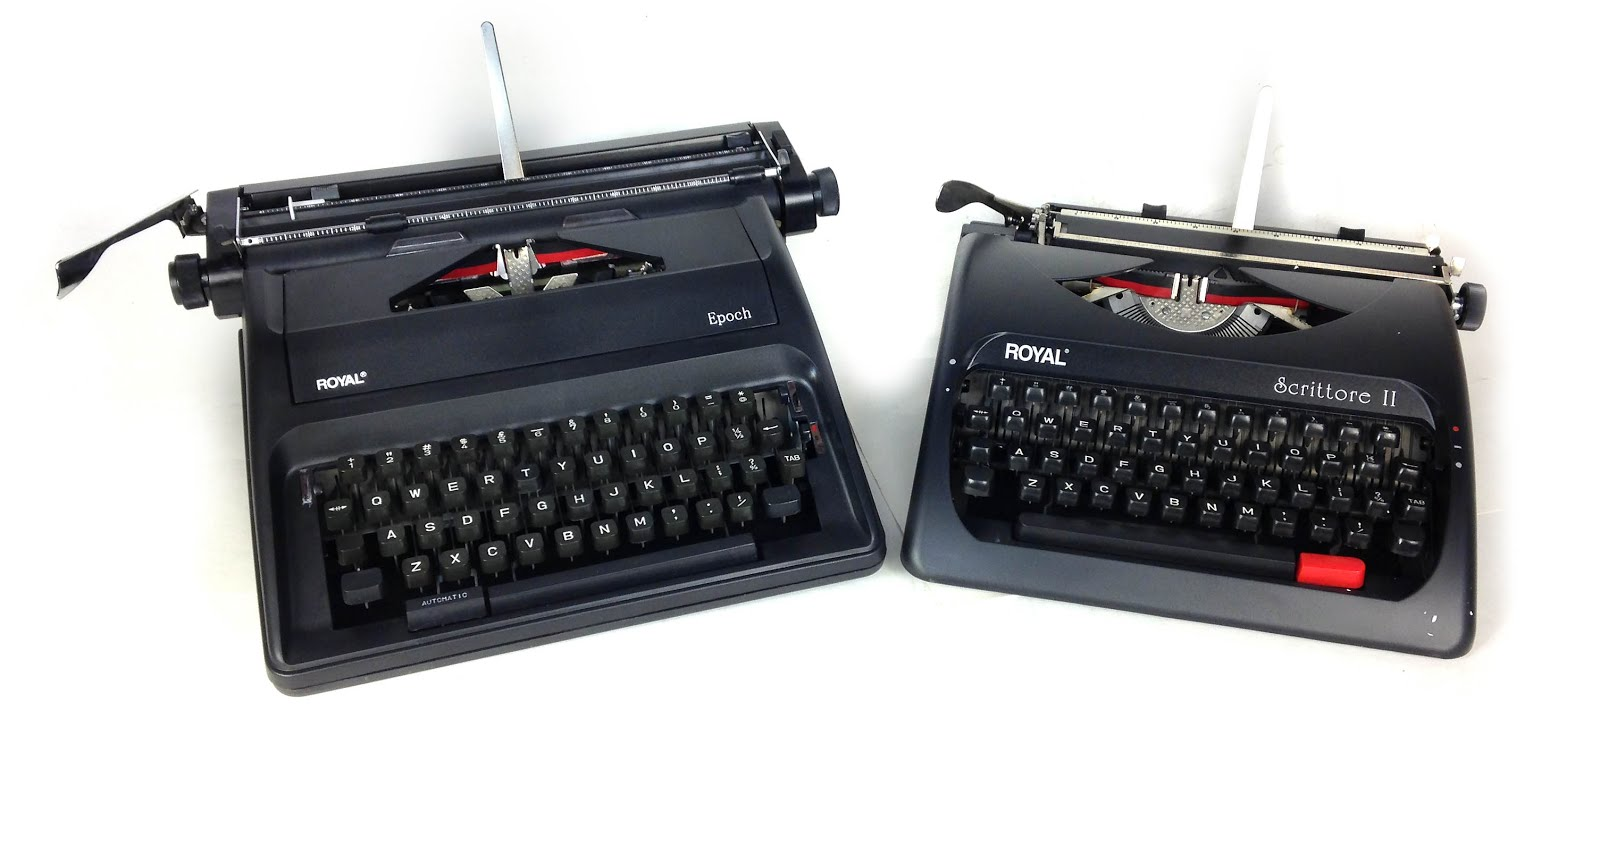 Shanghai Weilv has also produced typewriters with different mechanisms,  such as the Royal Scrittore II, which I review here. The Scrittore is a  smaller, ...